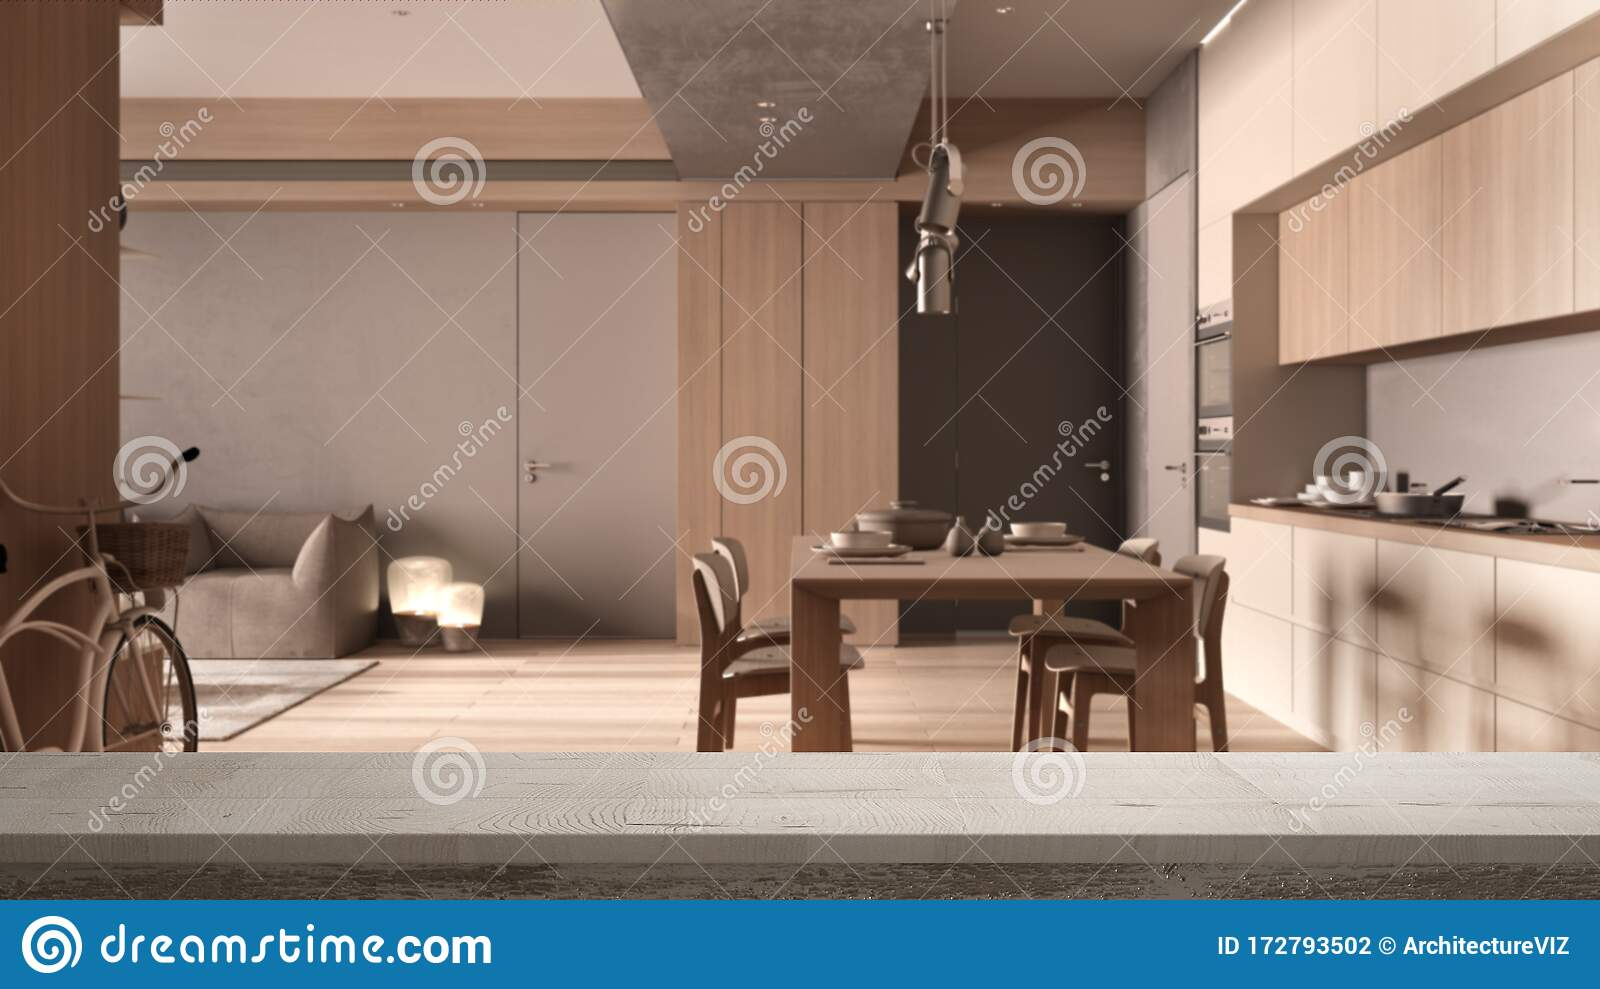 Wooden Vintage Table Top Or Shelf Closeup Zen Mood Over Minimalist Kitchen With Dining Room In Beige Tones With Wood And Stock Illustration Illustration Of Architecture Mockup 172793502